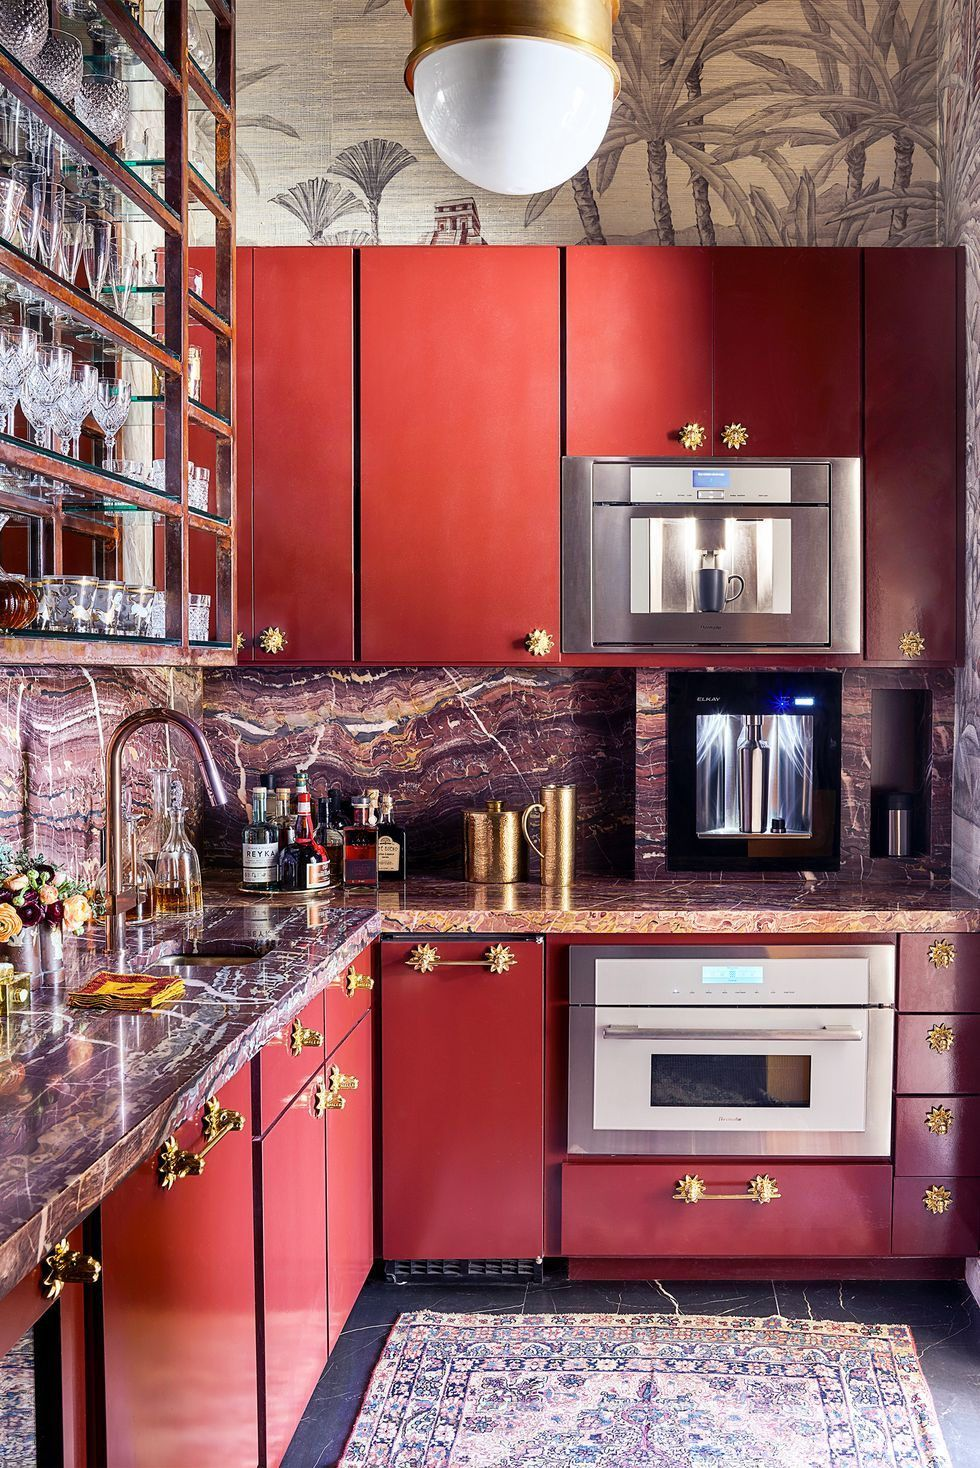 These Are Our 40 Favorite Kitchen Paint Colors Kitchen Layout Kitchen Design Small Kitchen Cabinet Design